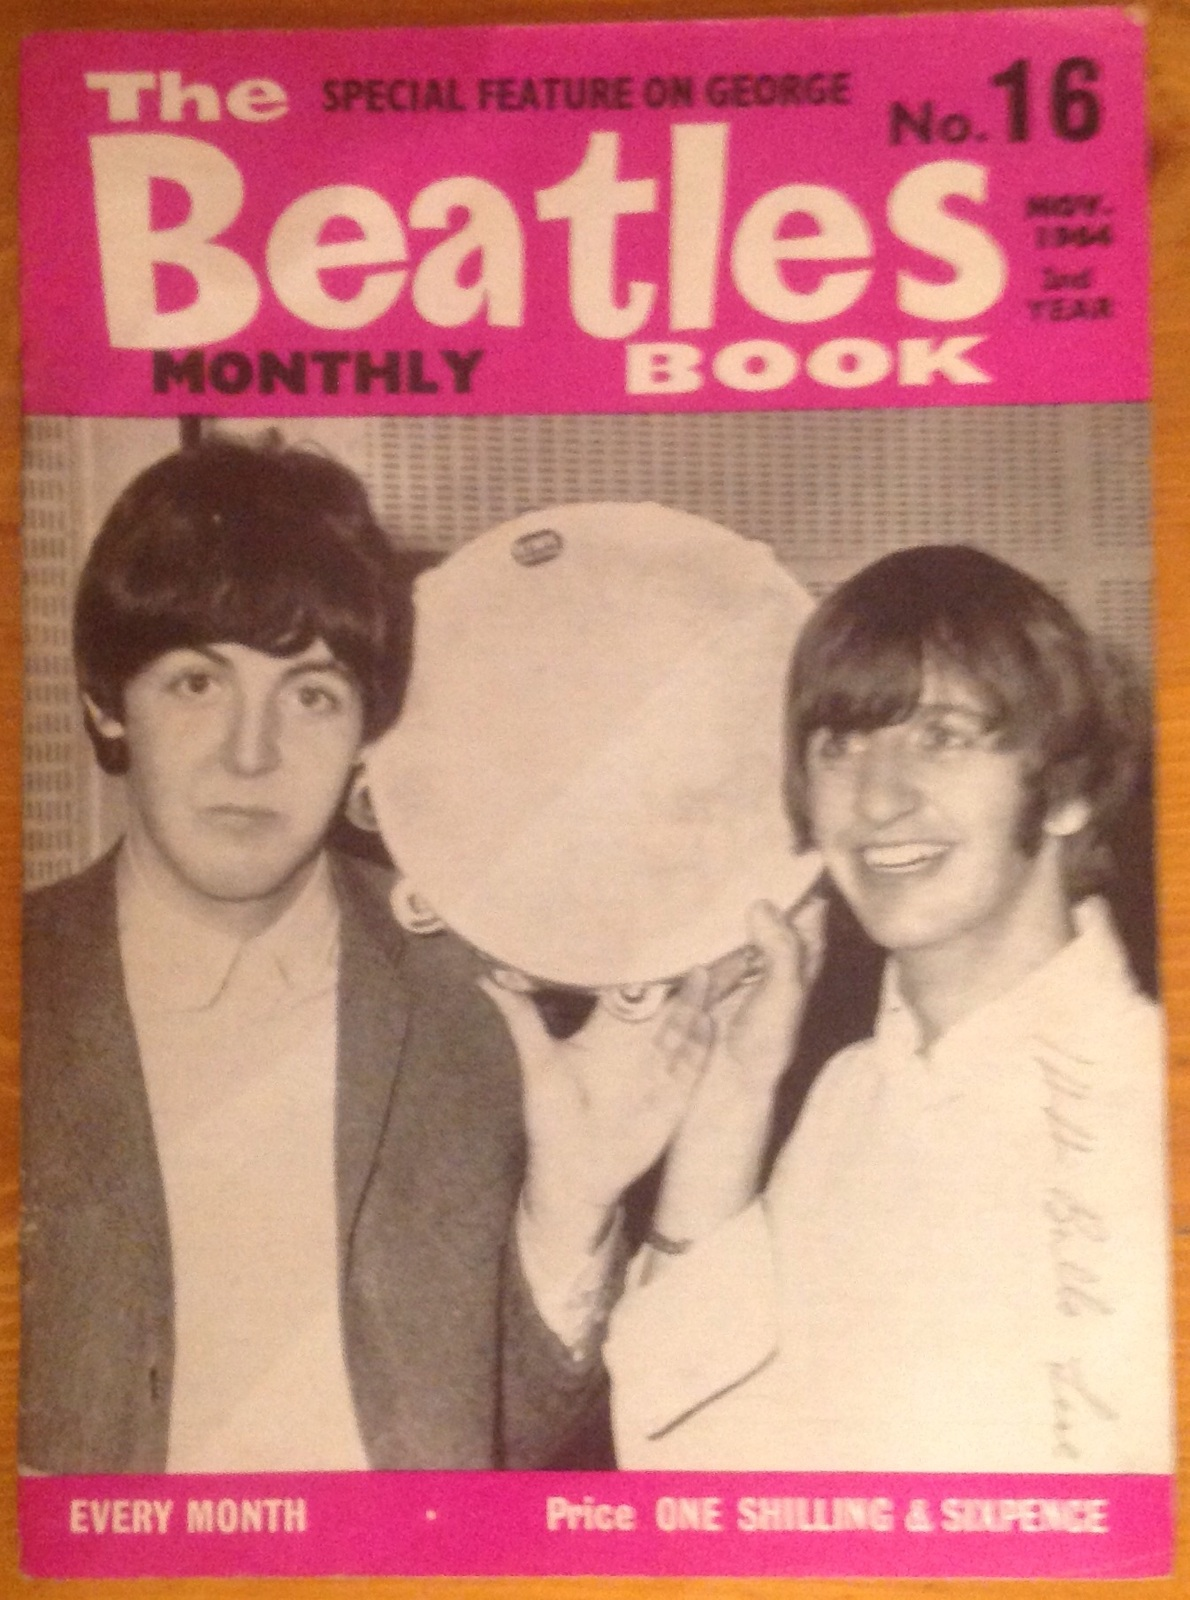 The Beatles Monthly Magazine Book No 16 Nov 1964 Original